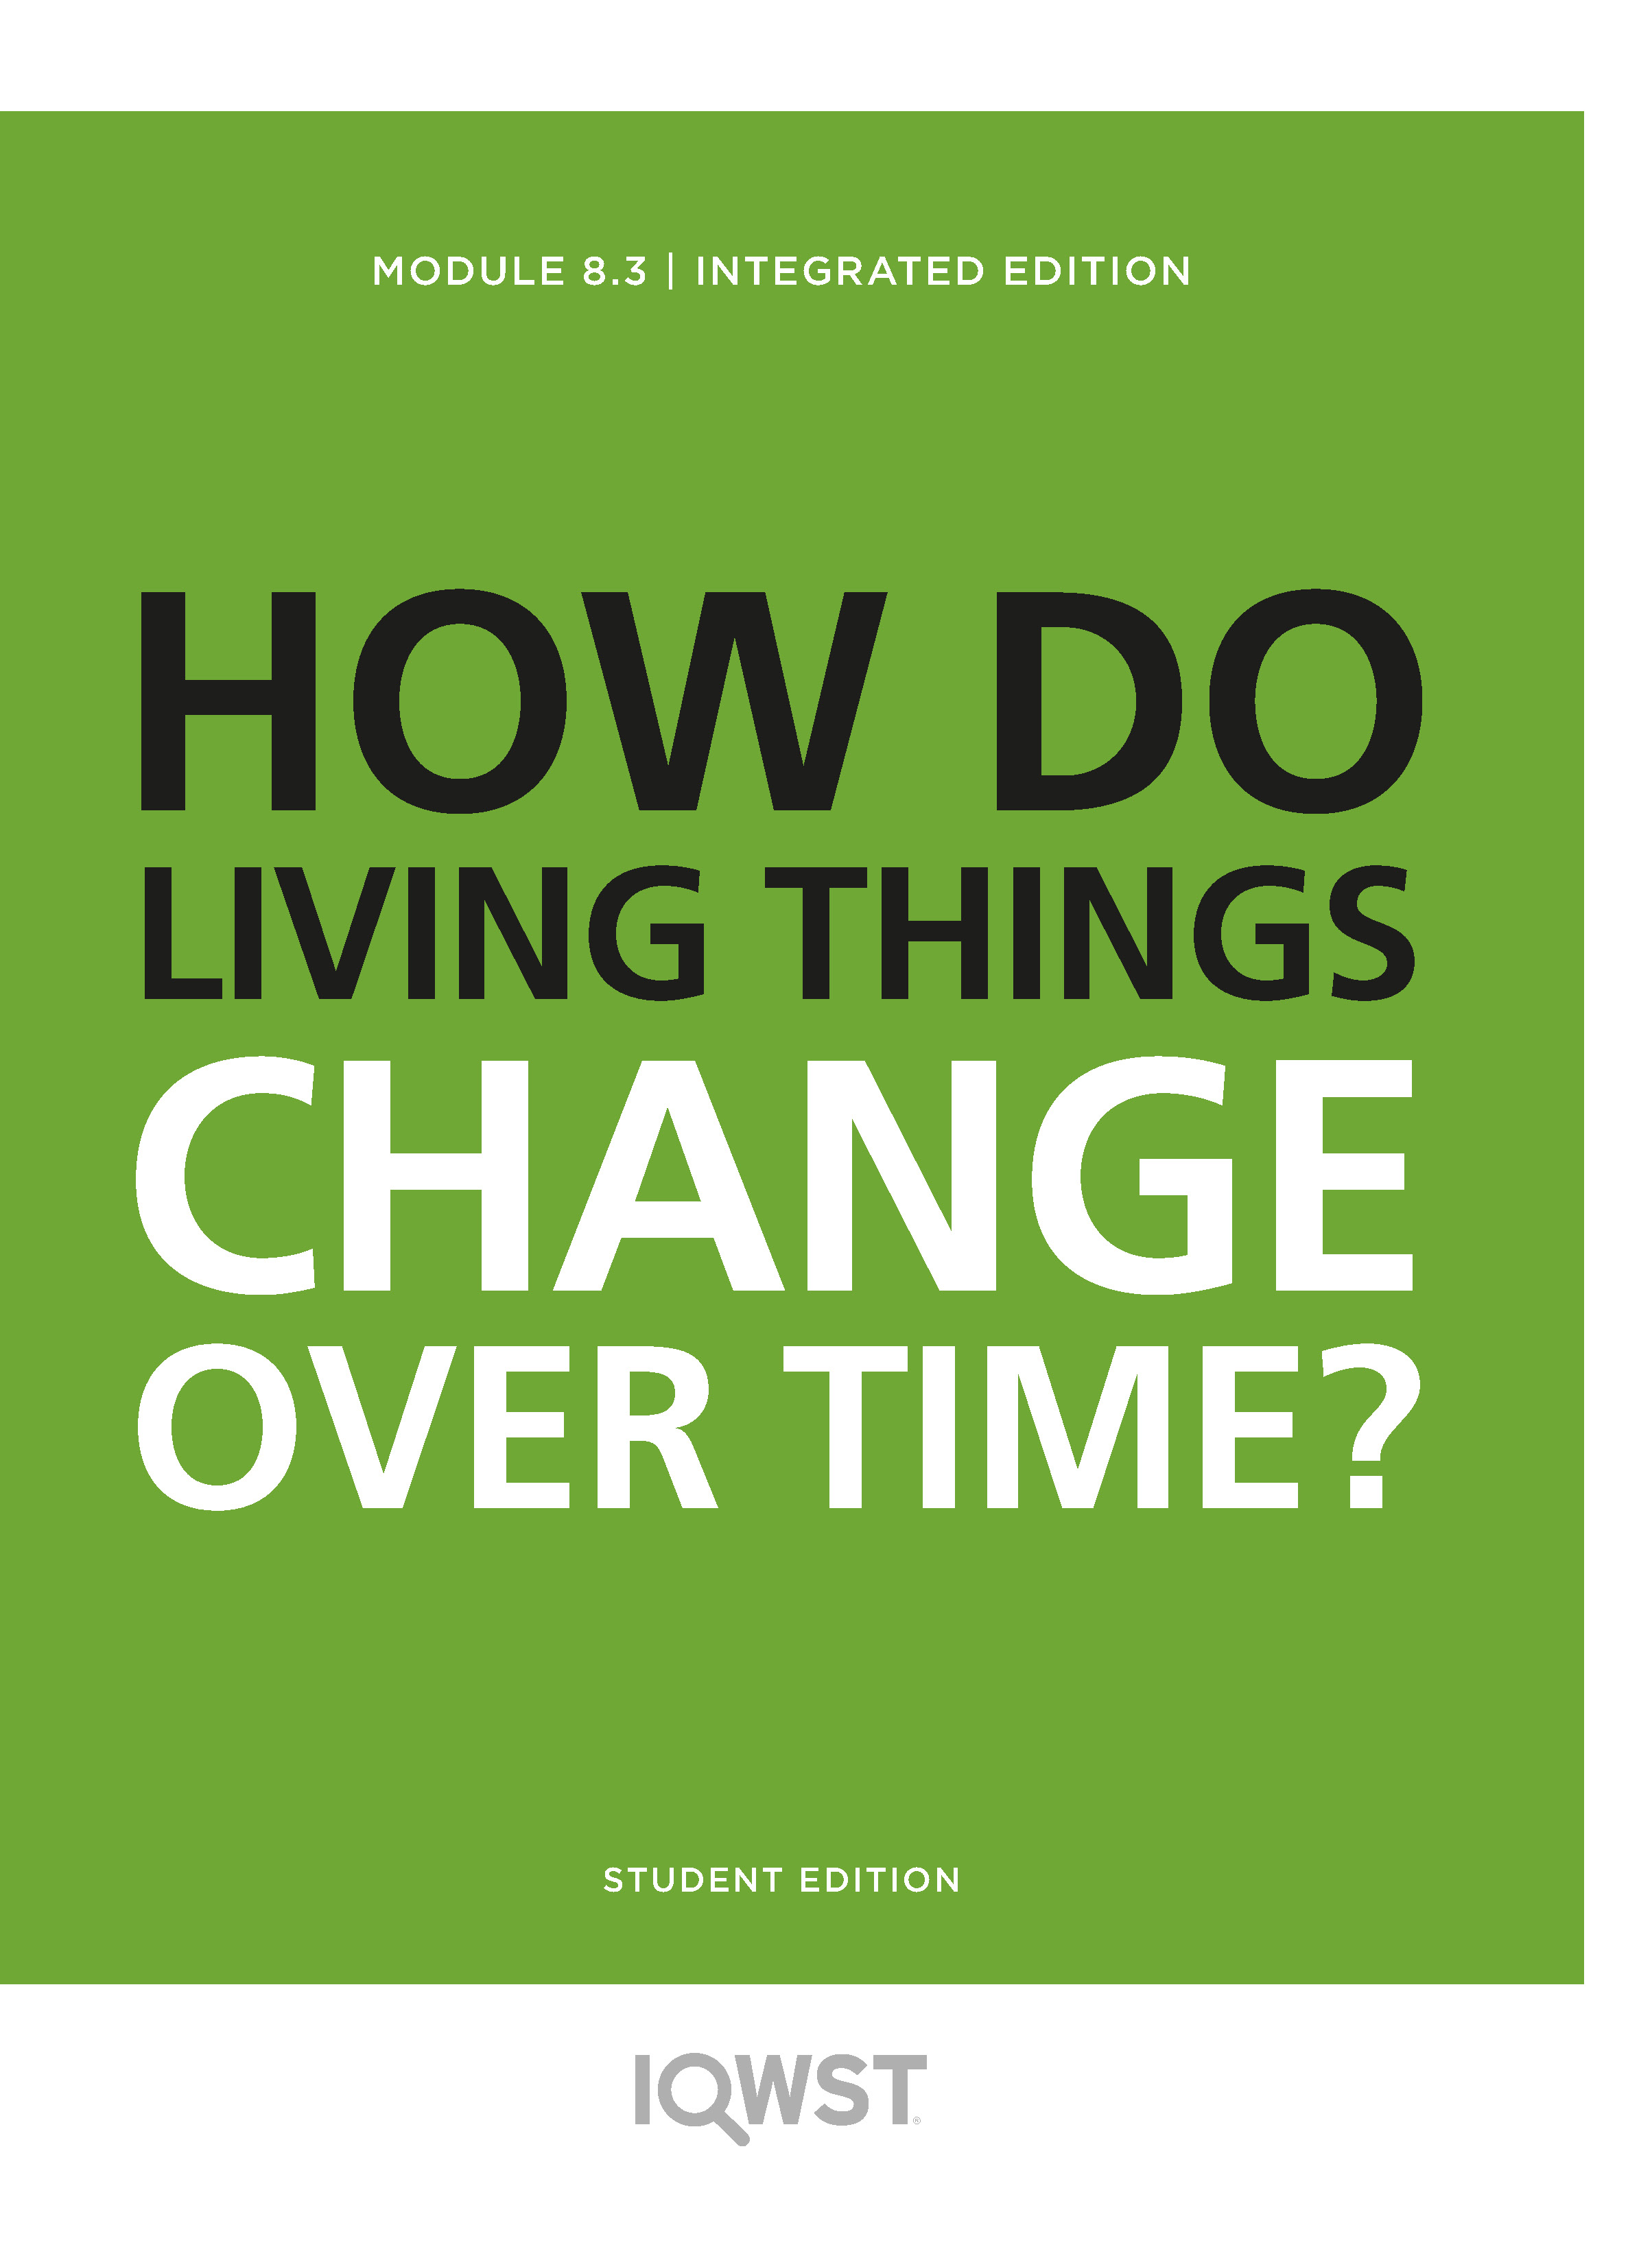 8.3 How Do Living Things Change Over Time?